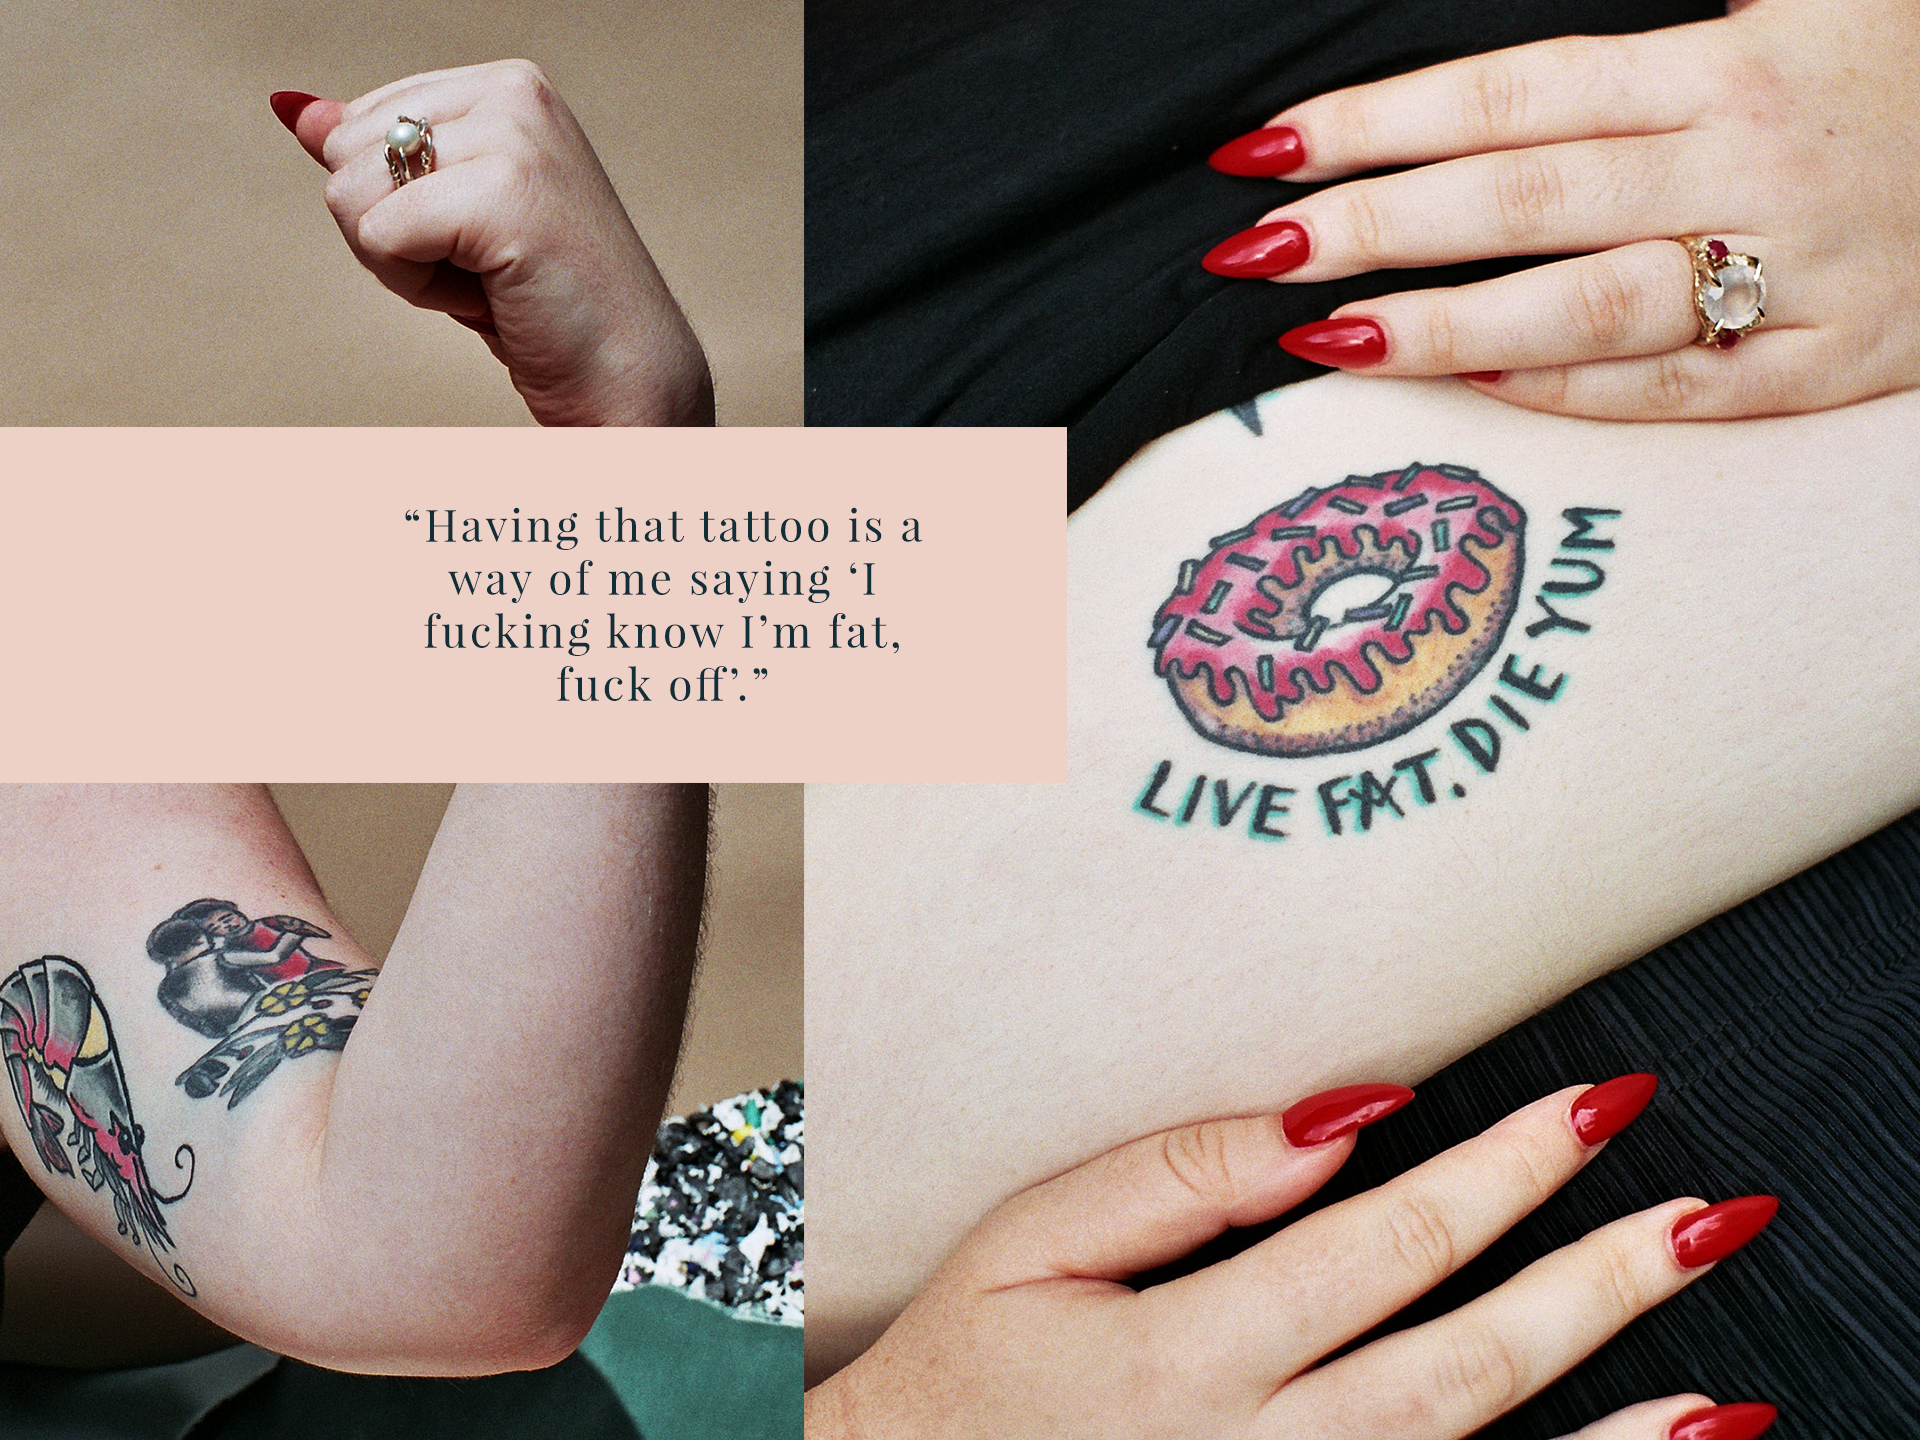 Tattoo meaning young women trend body image photos for Places to hide tattoos